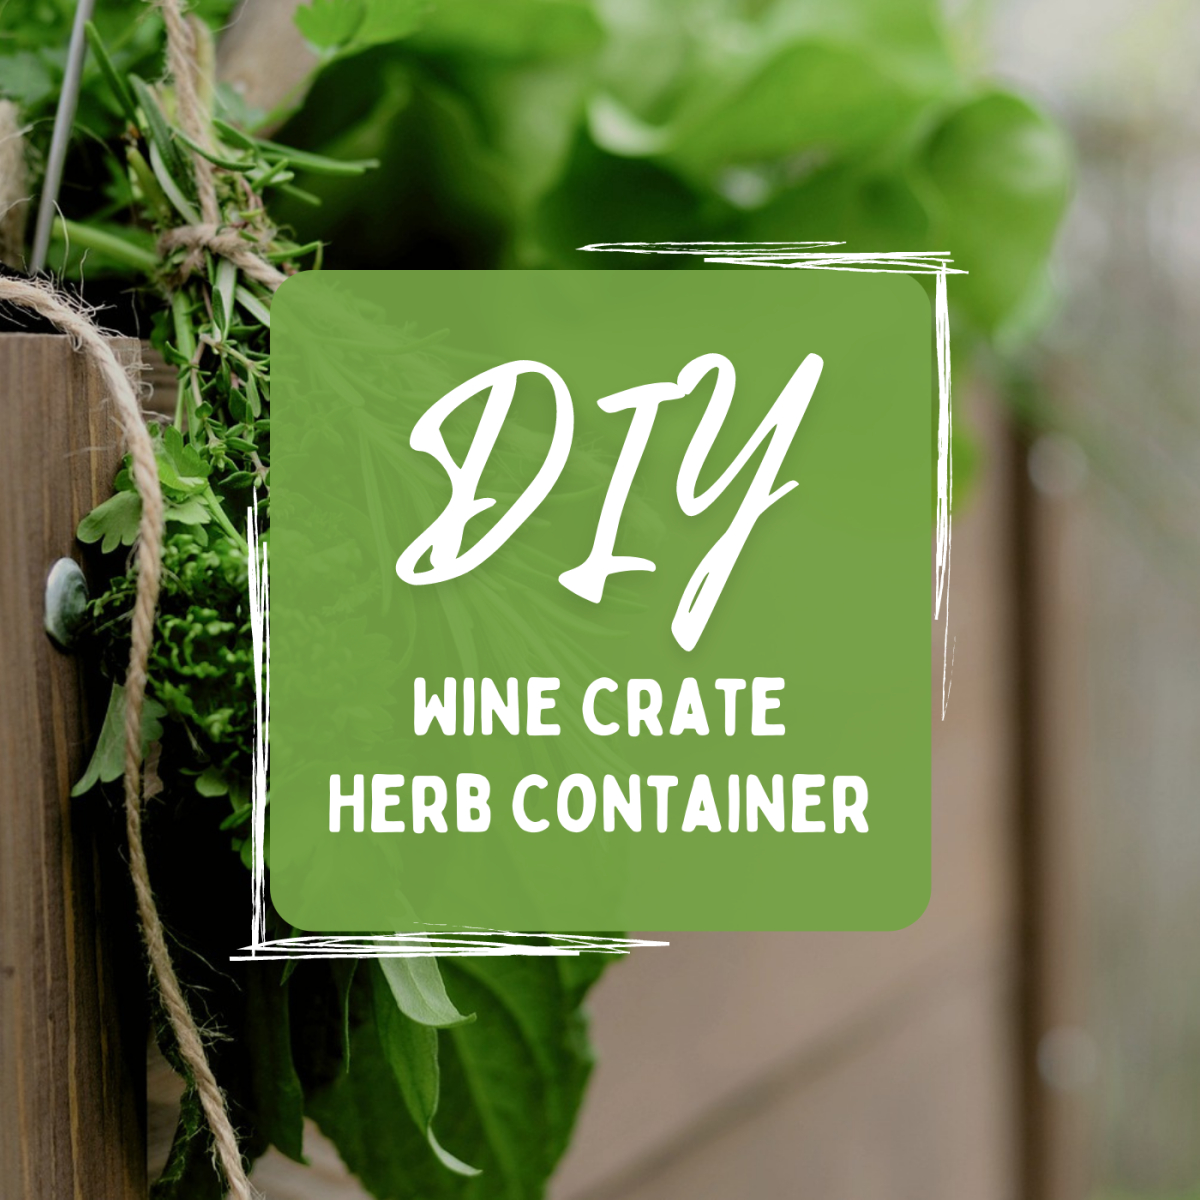 Got some old wine crates hanging around? Learn how to repurpose one as an attractive herb planter for your garden!